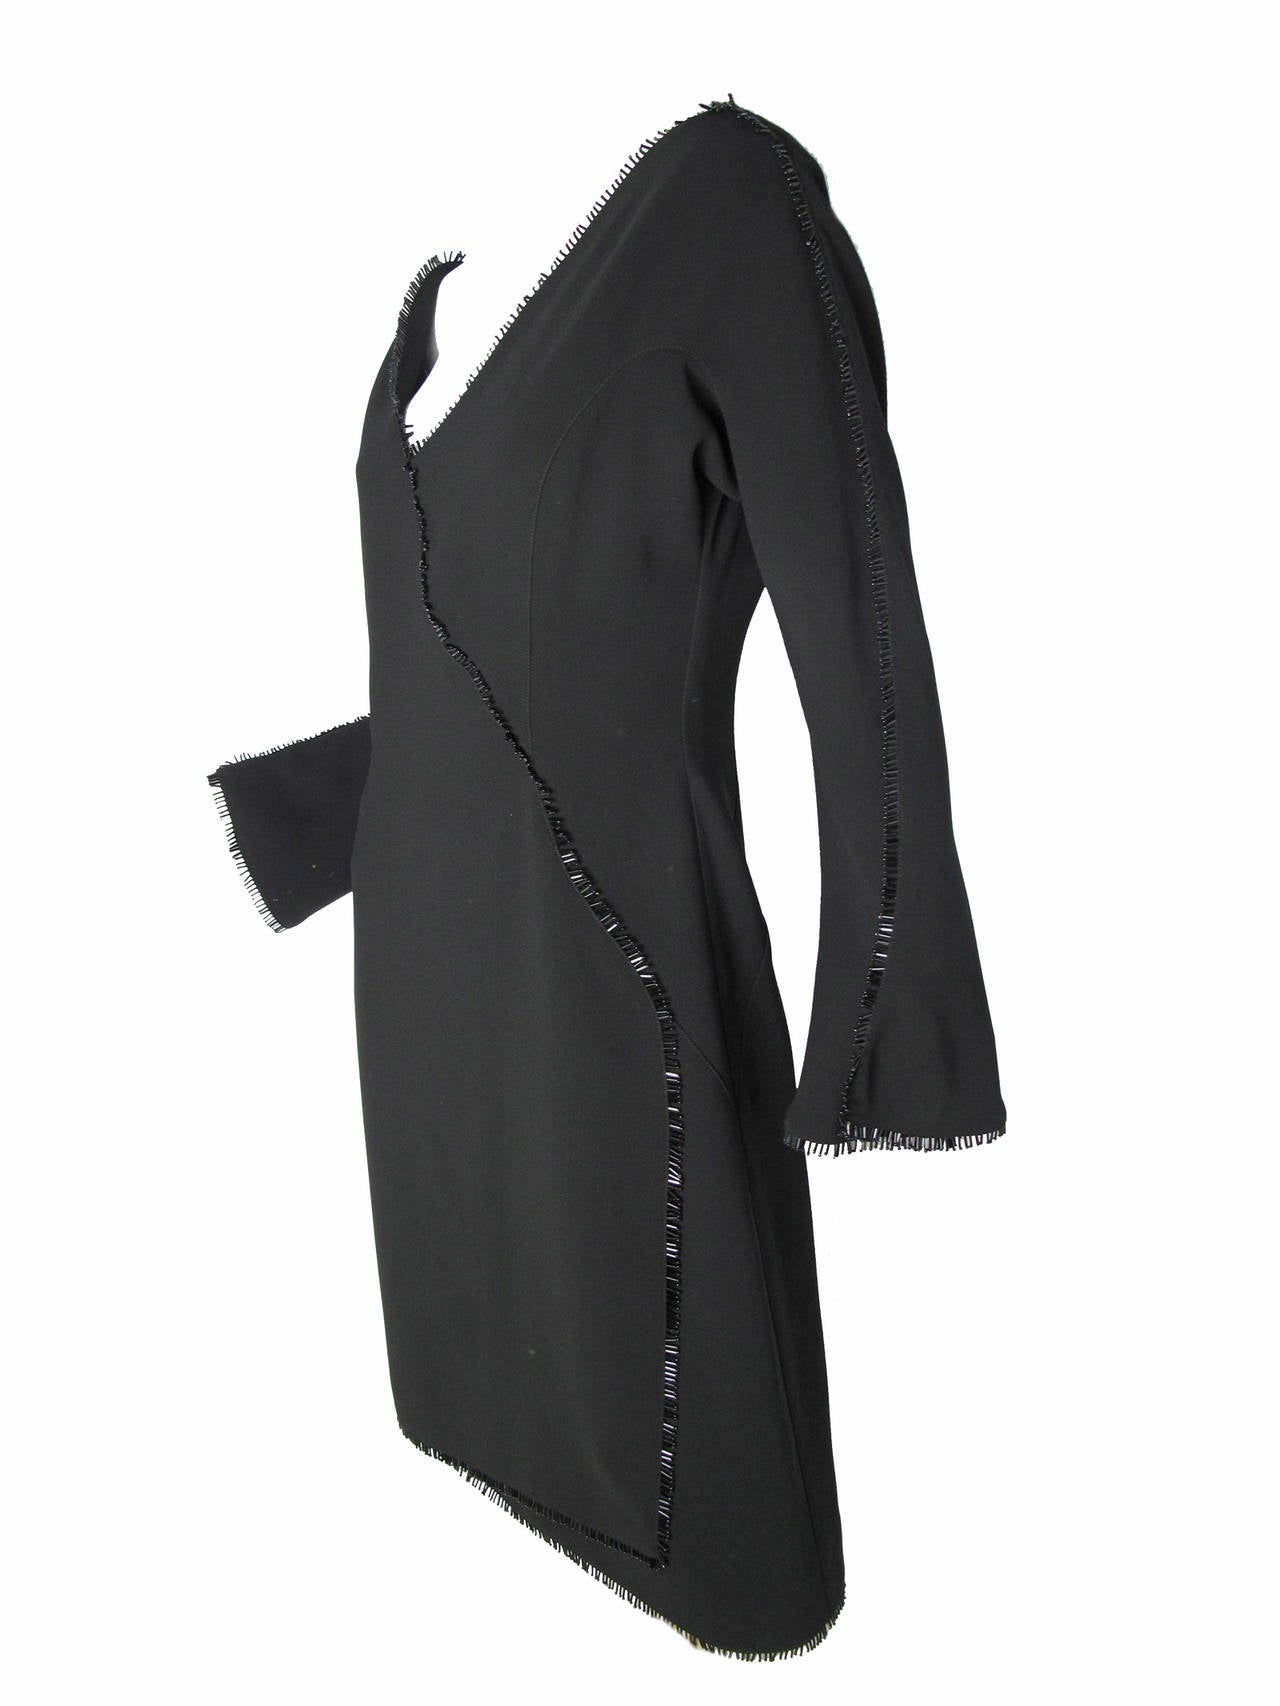 Thierry Mugler Black Cocktail Dress with Beading on Trim 2